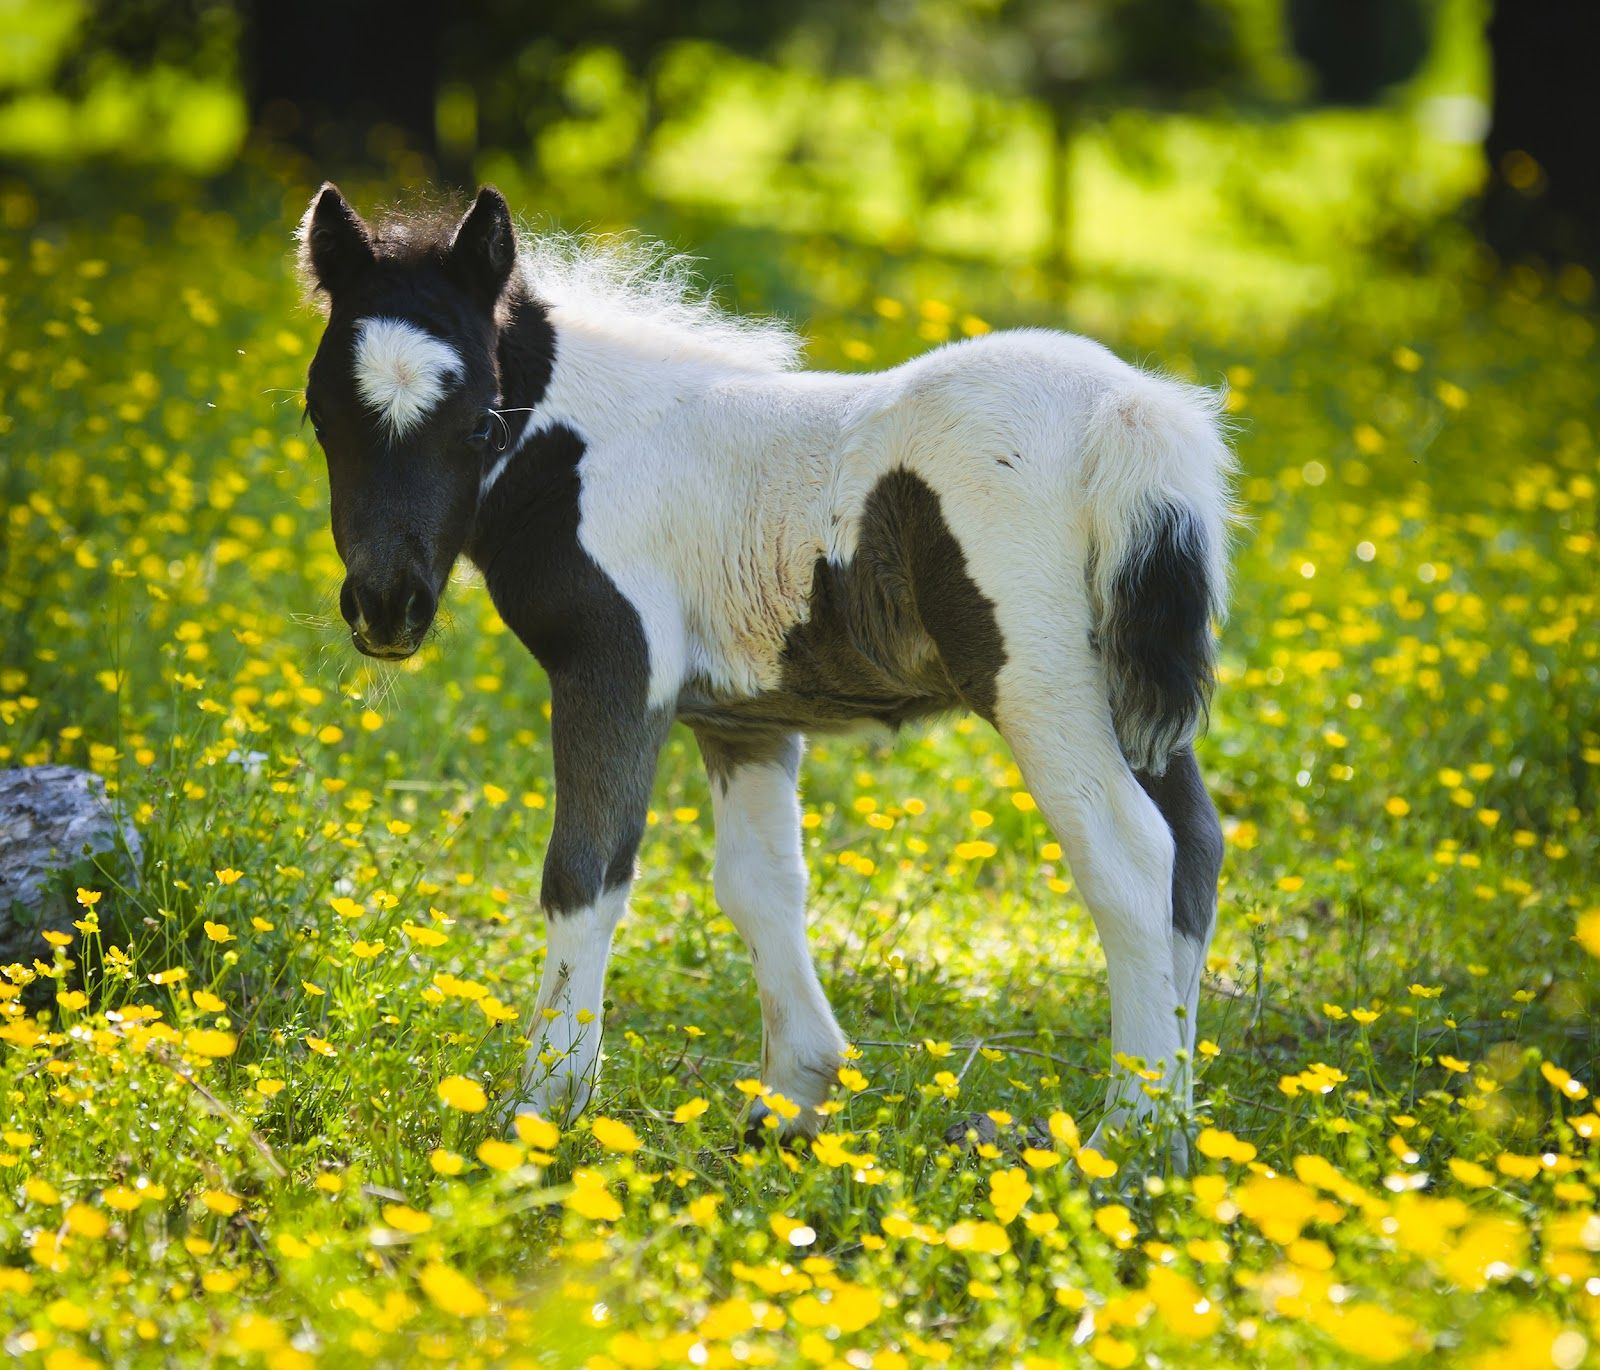 cute baby foals - photo #29